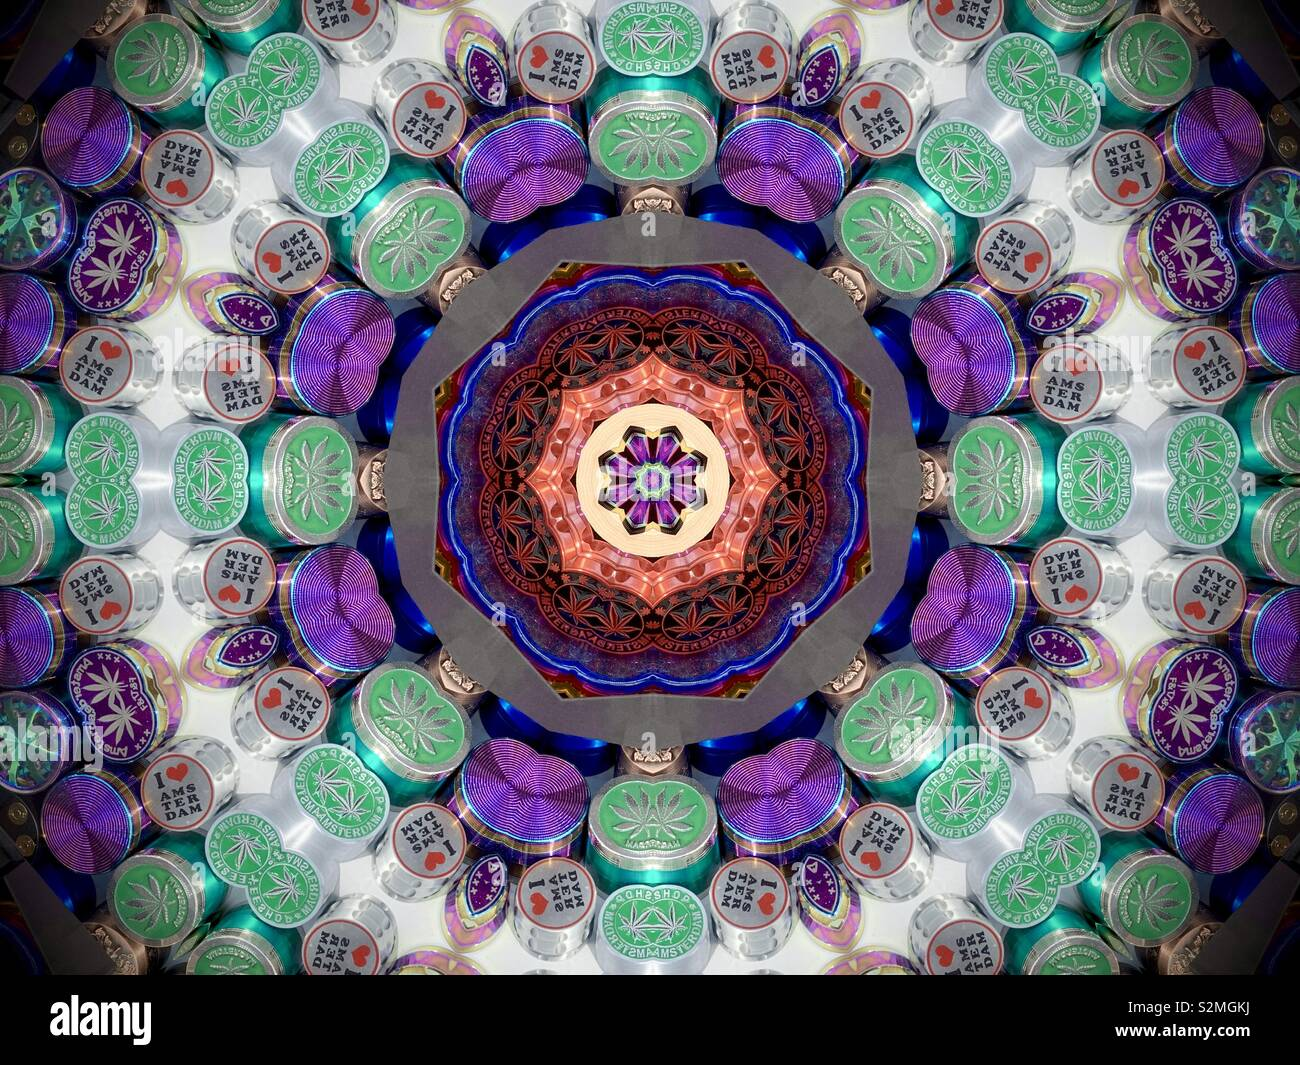 Kaleidoscope effect abstract image of cannabis tins in an Amsterdam shop window. April 2019. - Stock Image